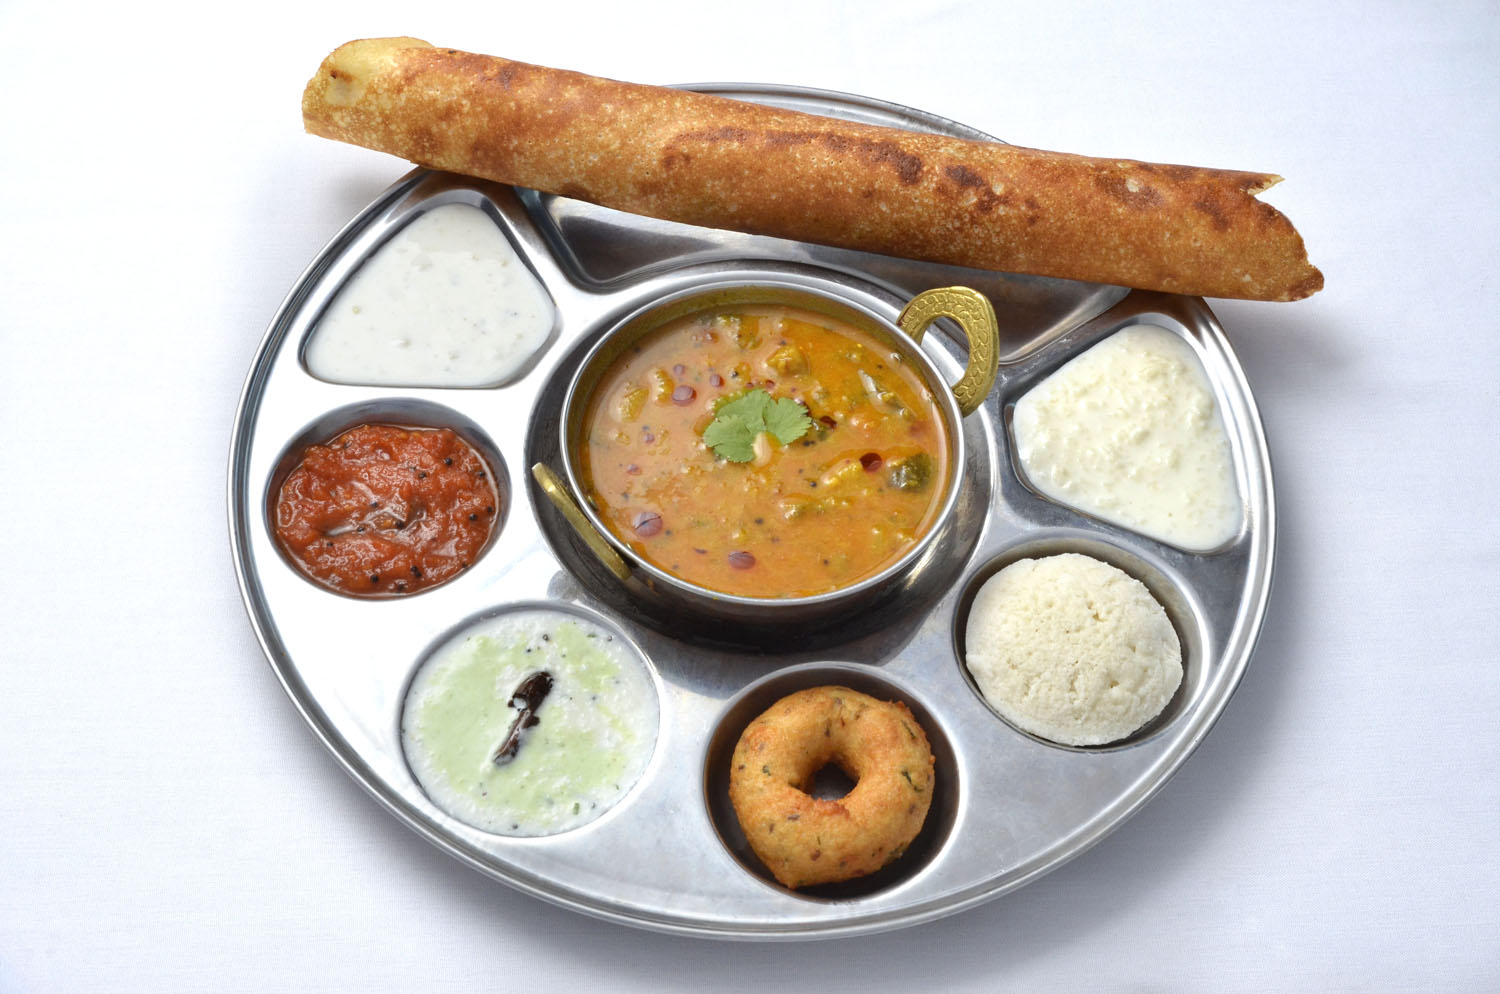 Masala dosa recipe dosa catering london best restaurant wembley masala dosa forumfinder Gallery